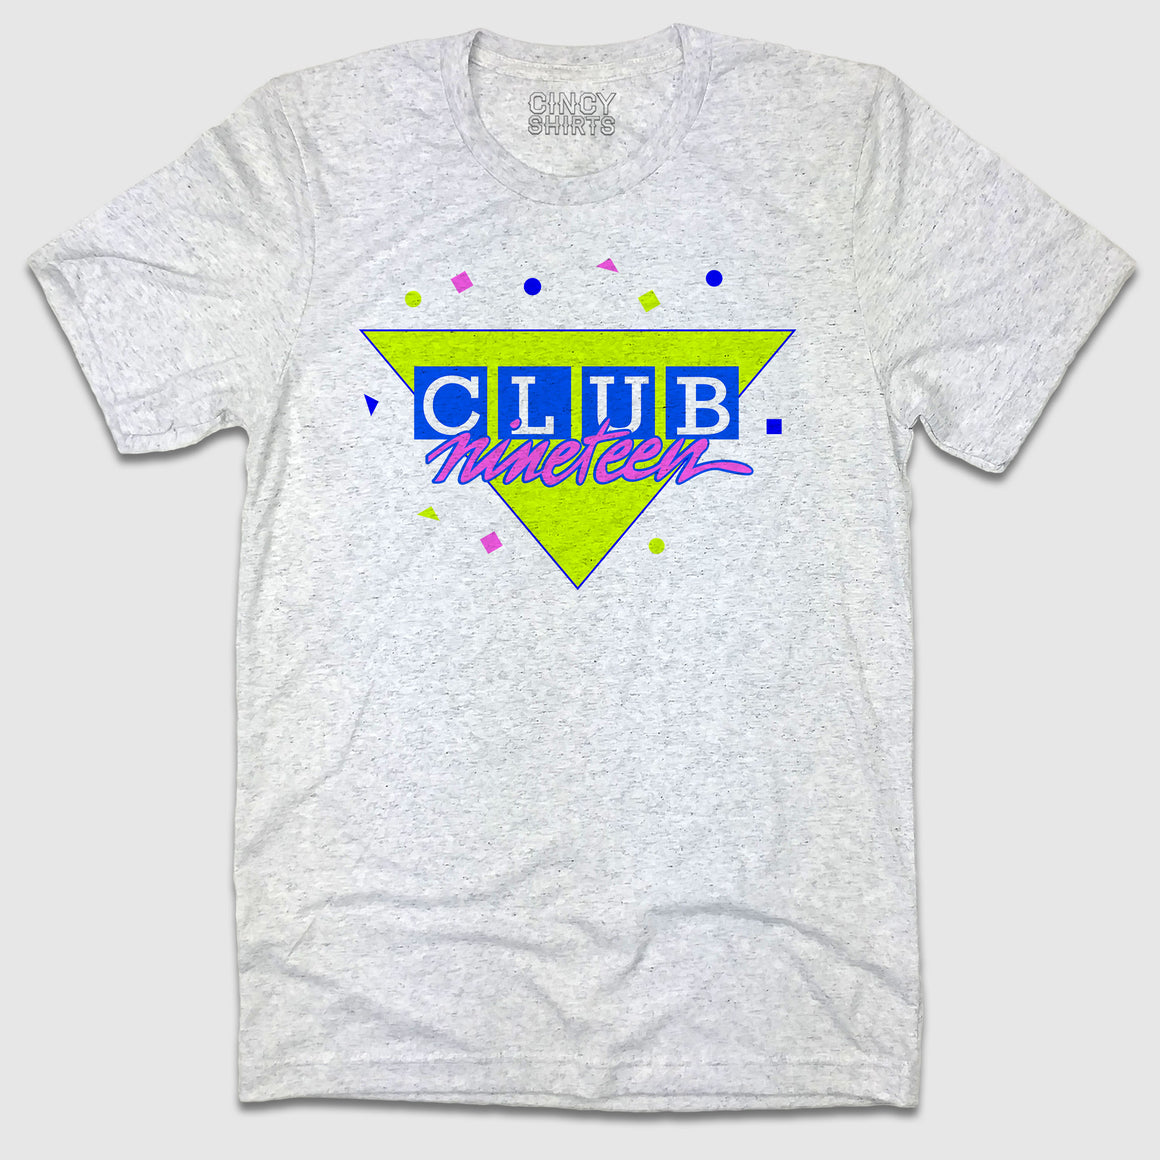 Club Nineteen Retro Logo - Cincy Shirts